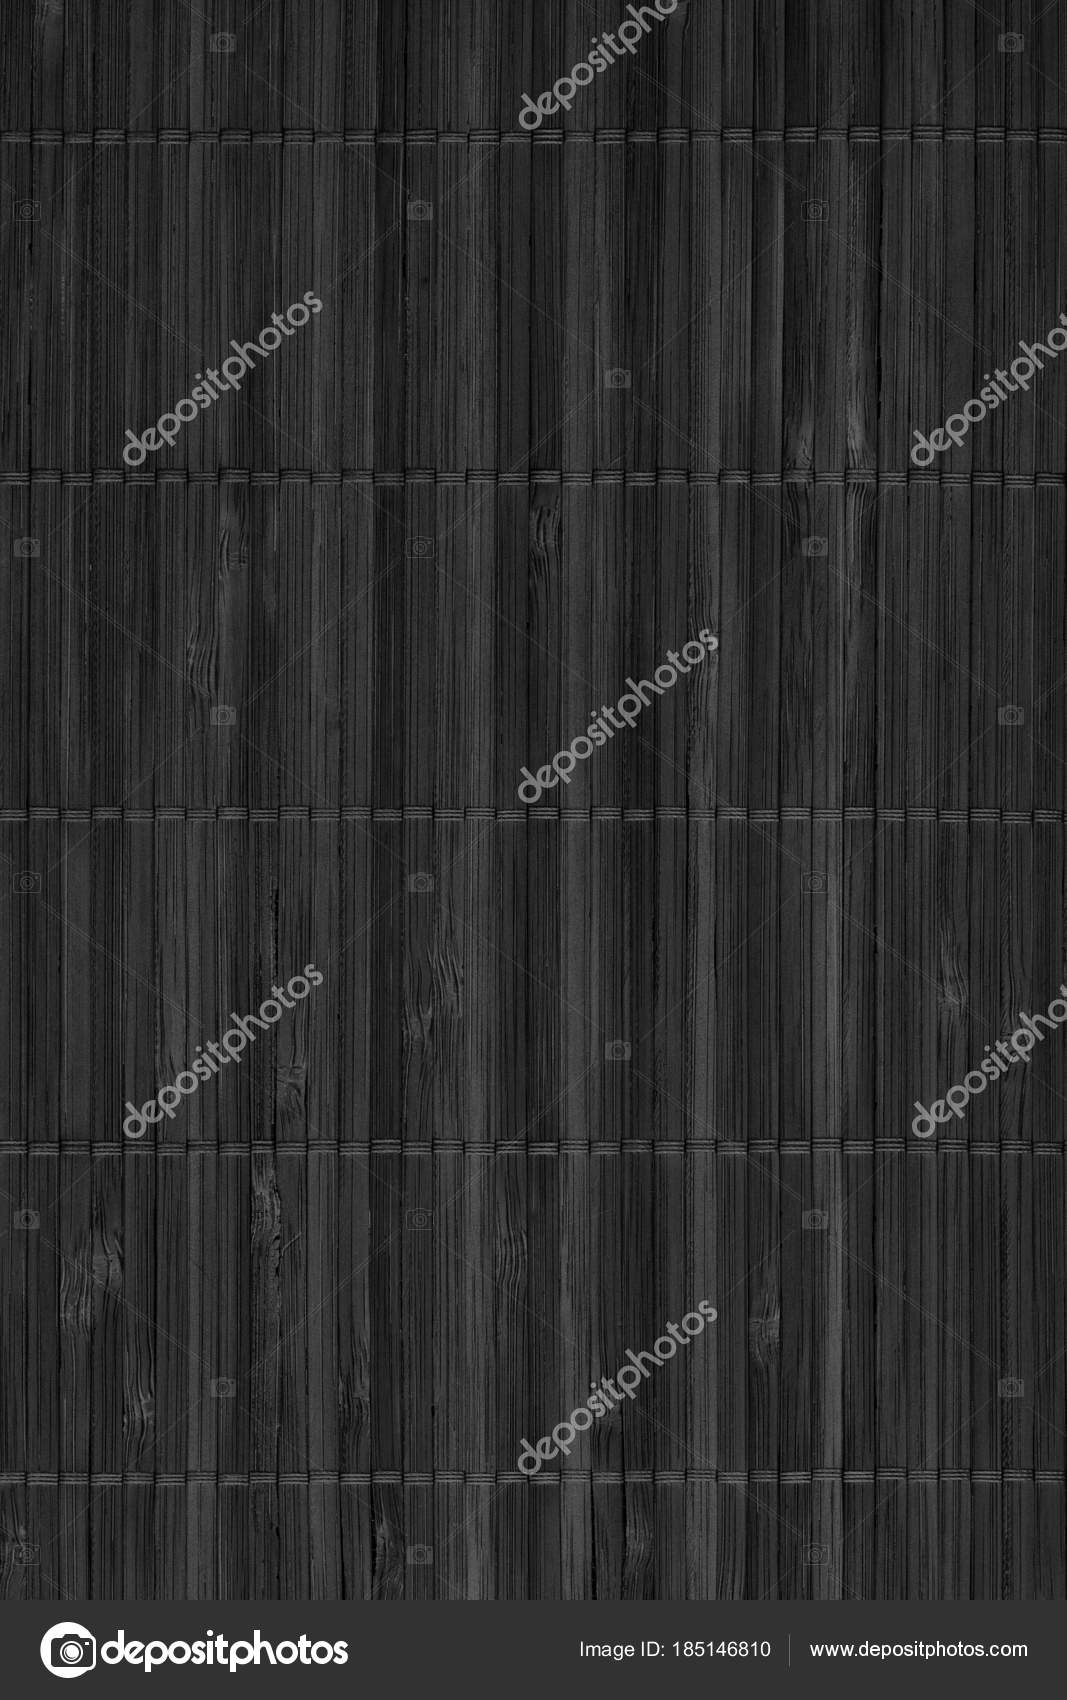 Black Rustic Bamboo Place Mat Slatted Interlaced Coarse Grunge Texture Stock Photo